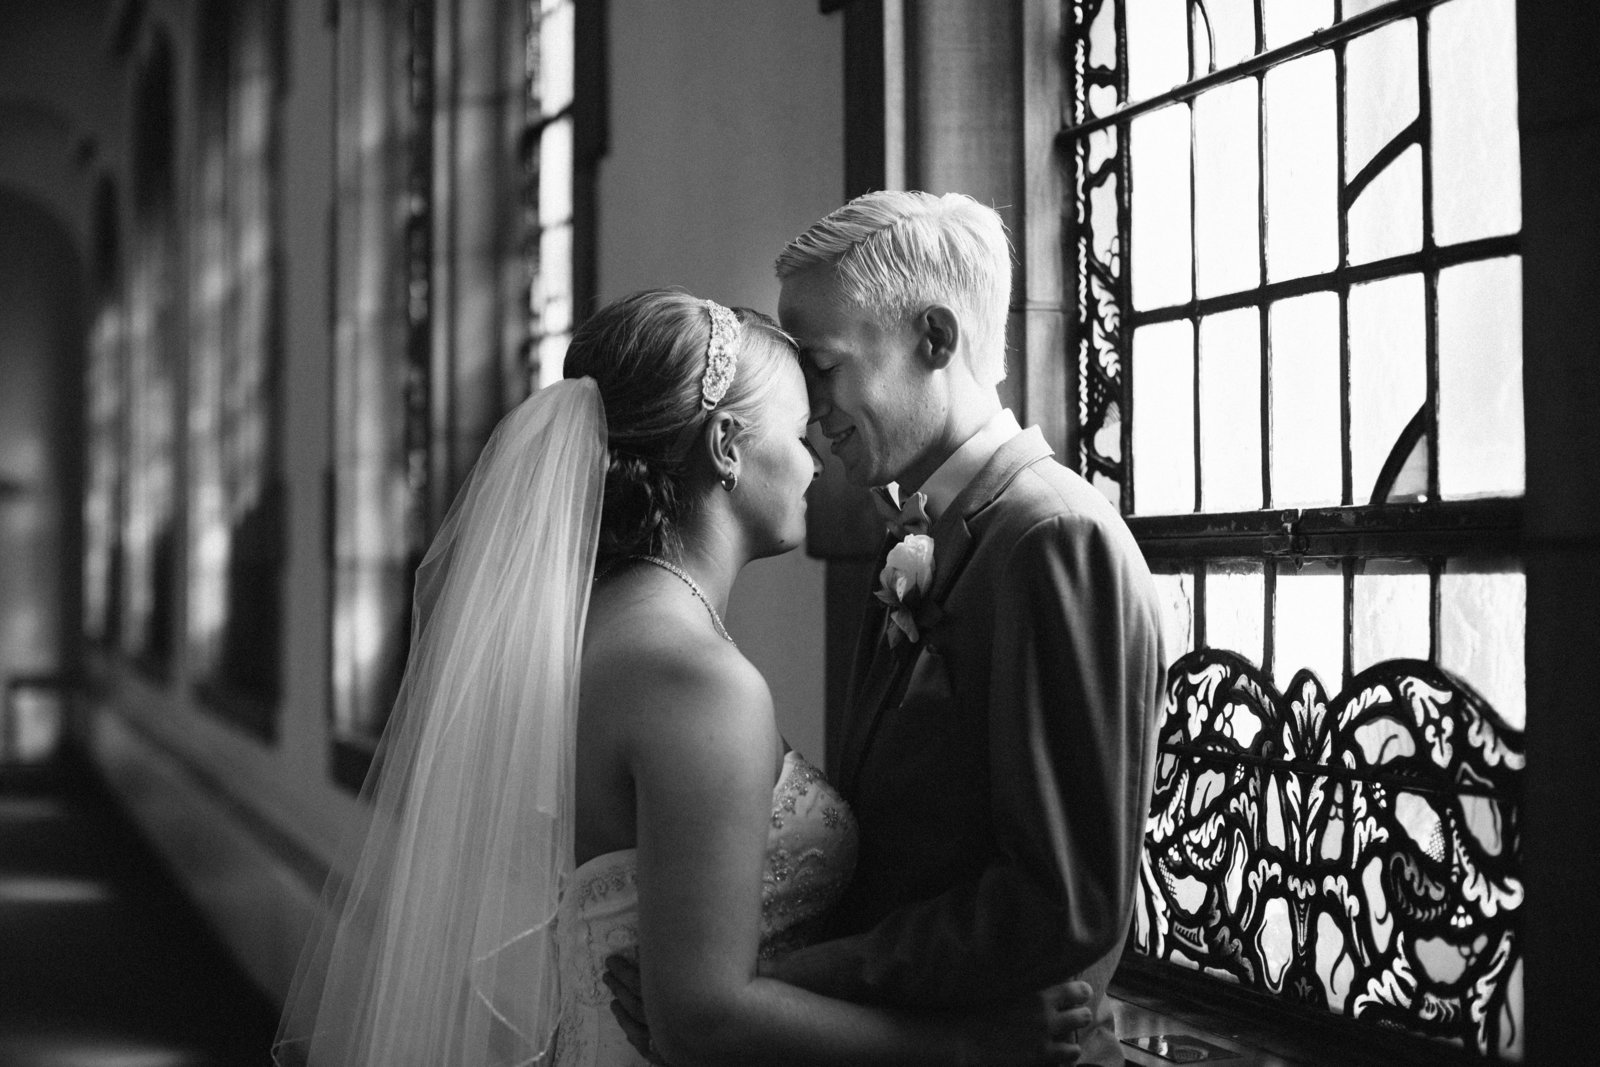 Akron Ohio wedding at The Chapel in Akron by Austin and Rachel Photography